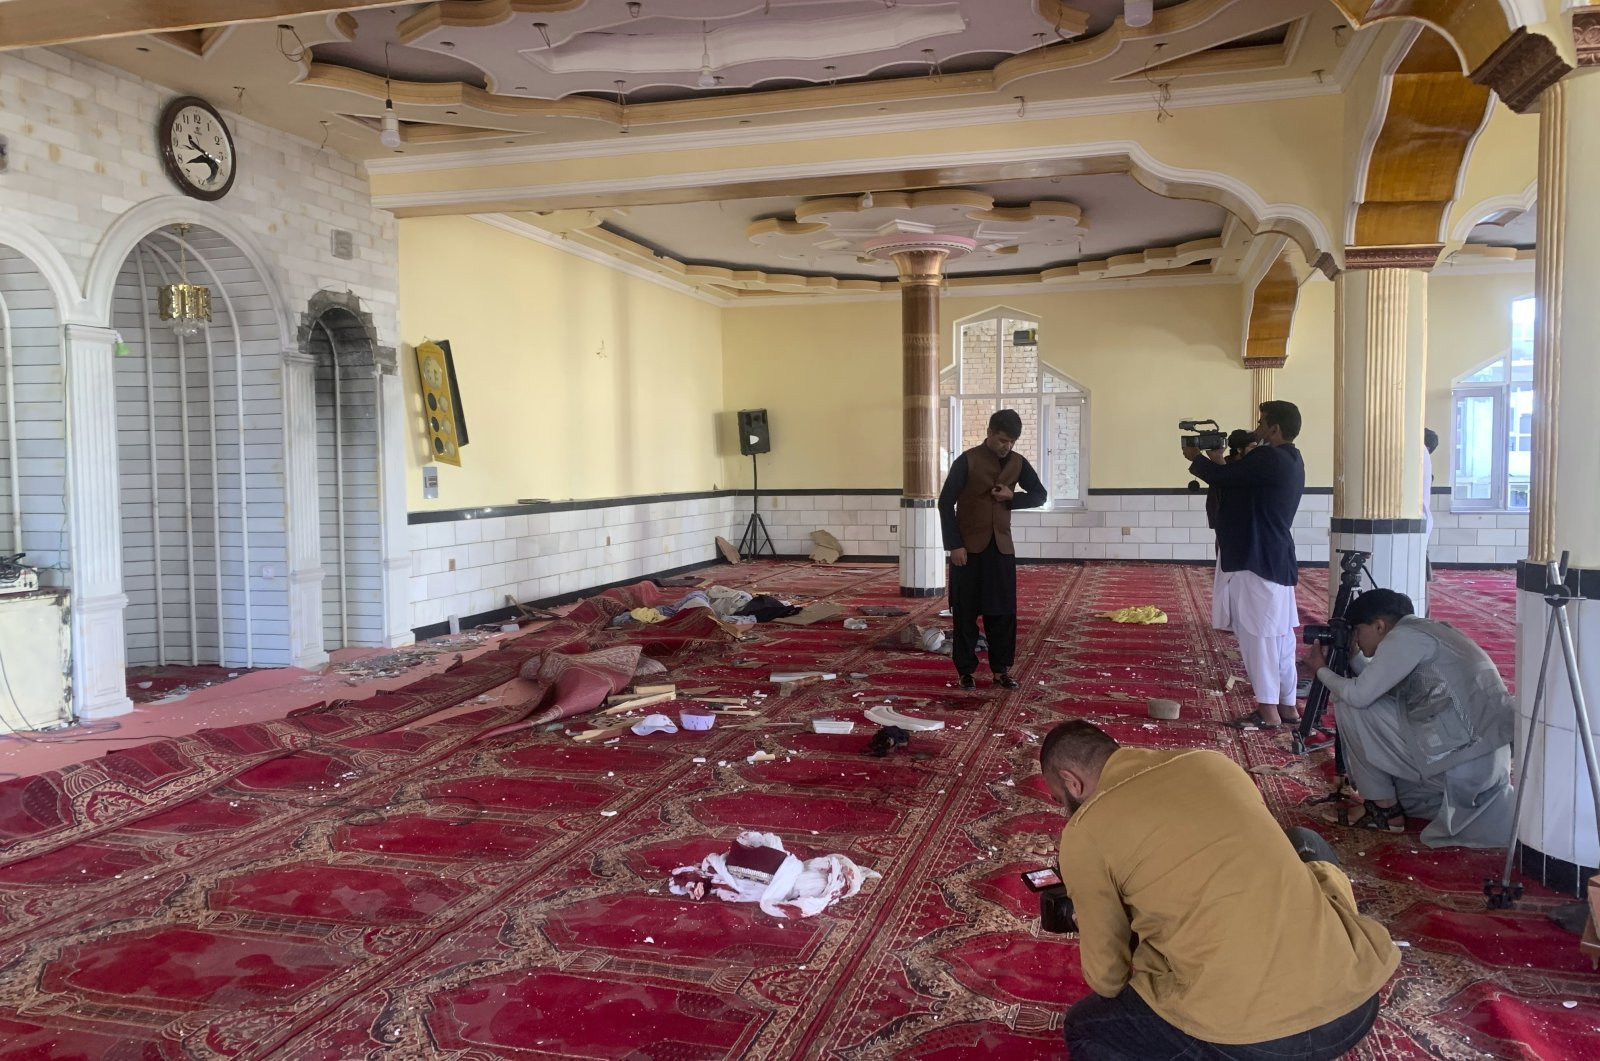 Afghan journalist take photos and film inside a mosque after a bomb explosion in Shakar Dara district of Kabul, Afghanistan, Friday, May 14, 2021. (AP Photo)